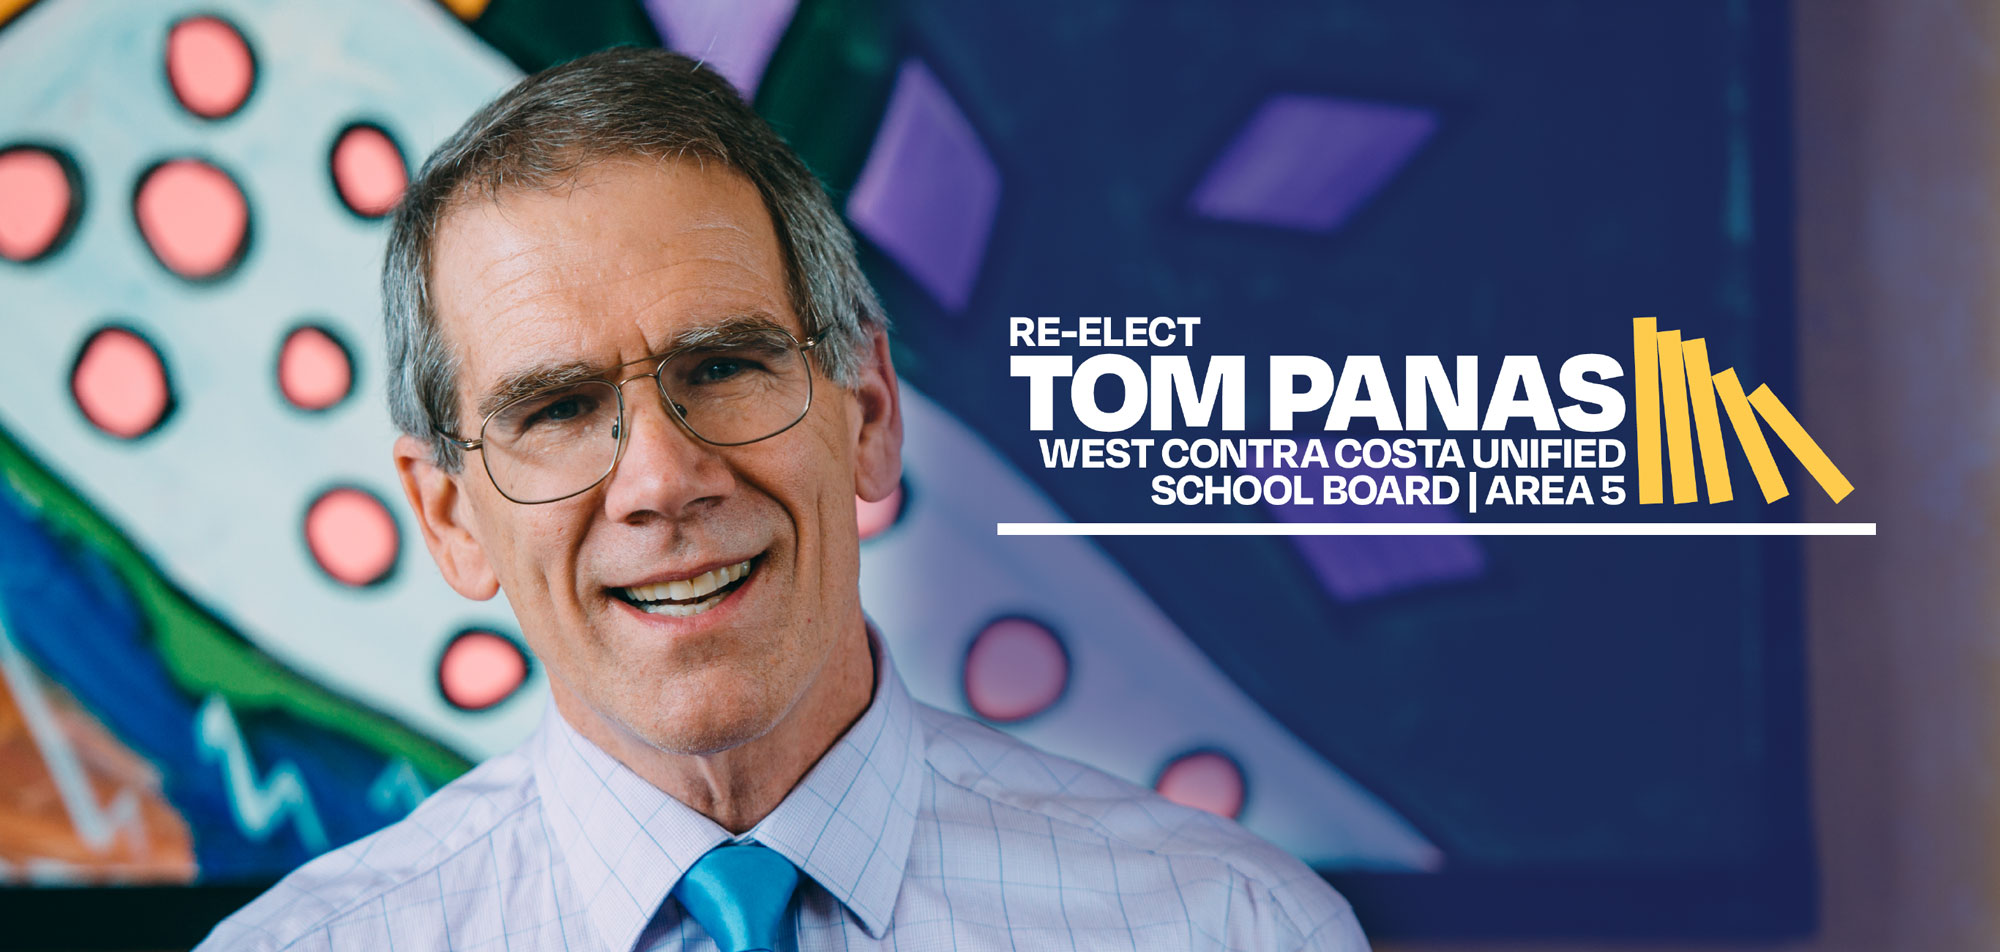 Re-elect Tom Panas for Contra Costa Unified School Board Area 5